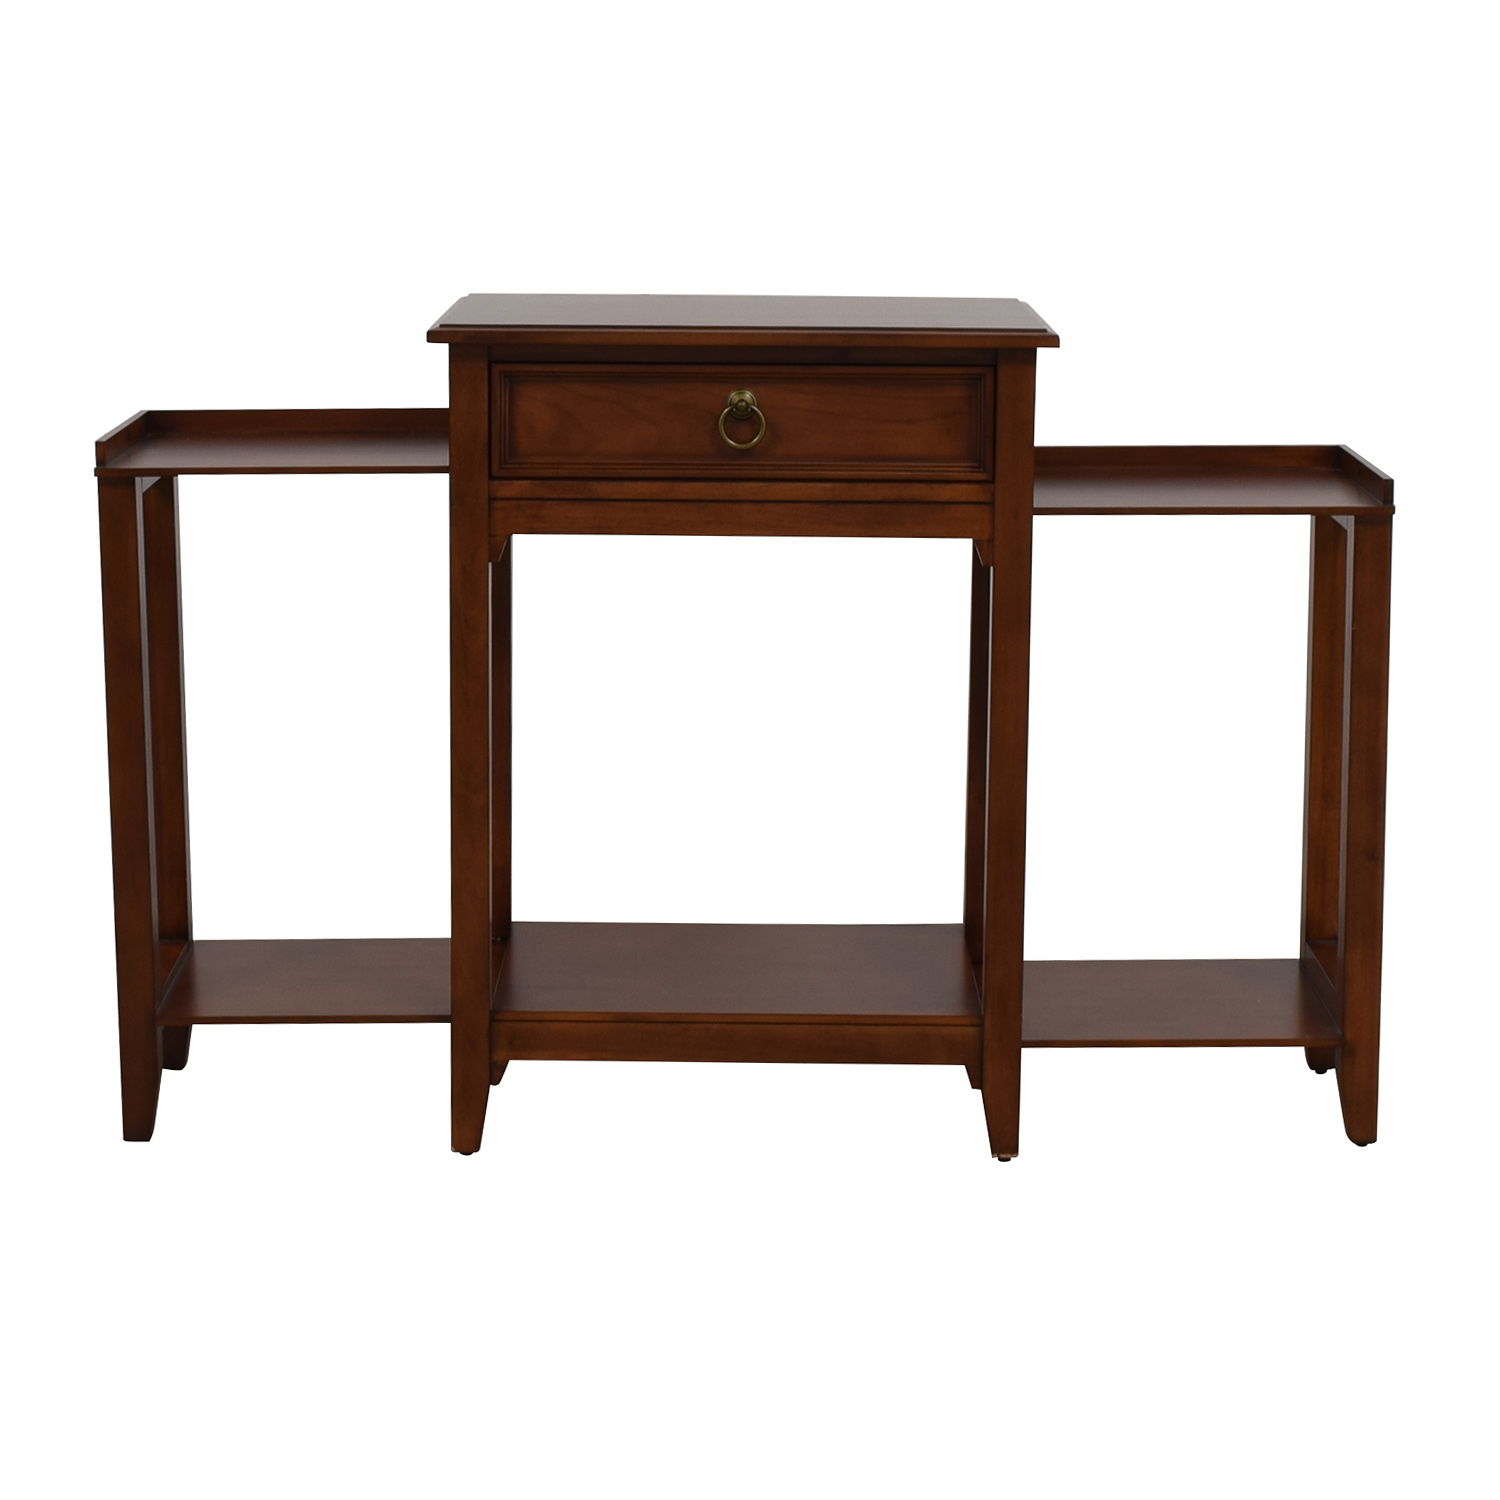 Single Drawer Wood Extendable Side Table second hand